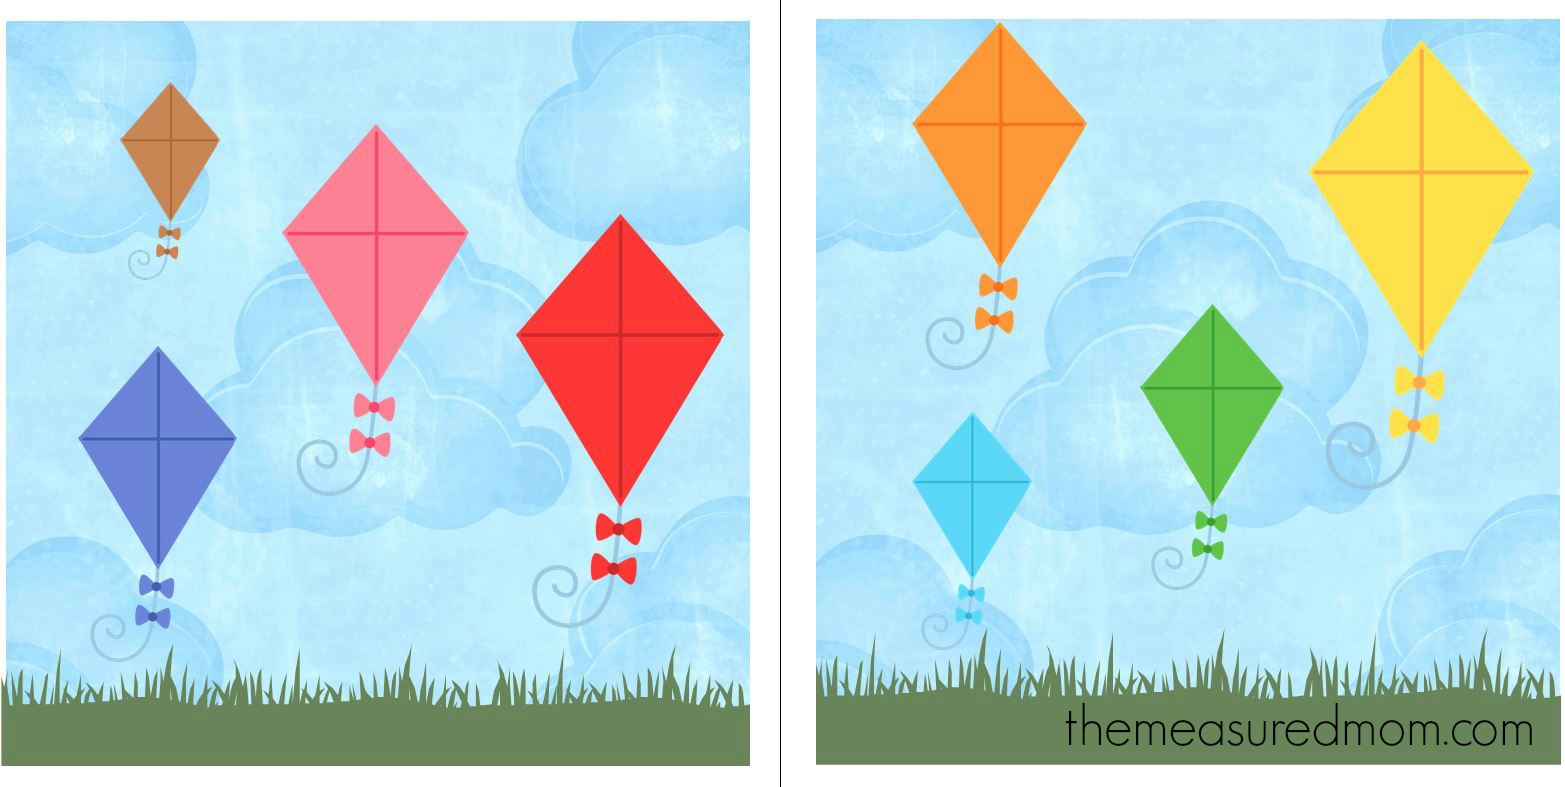 Free File Folder Game For Preschoolers: Kites! - The Measured Mom - Free Printable File Folders For Preschoolers